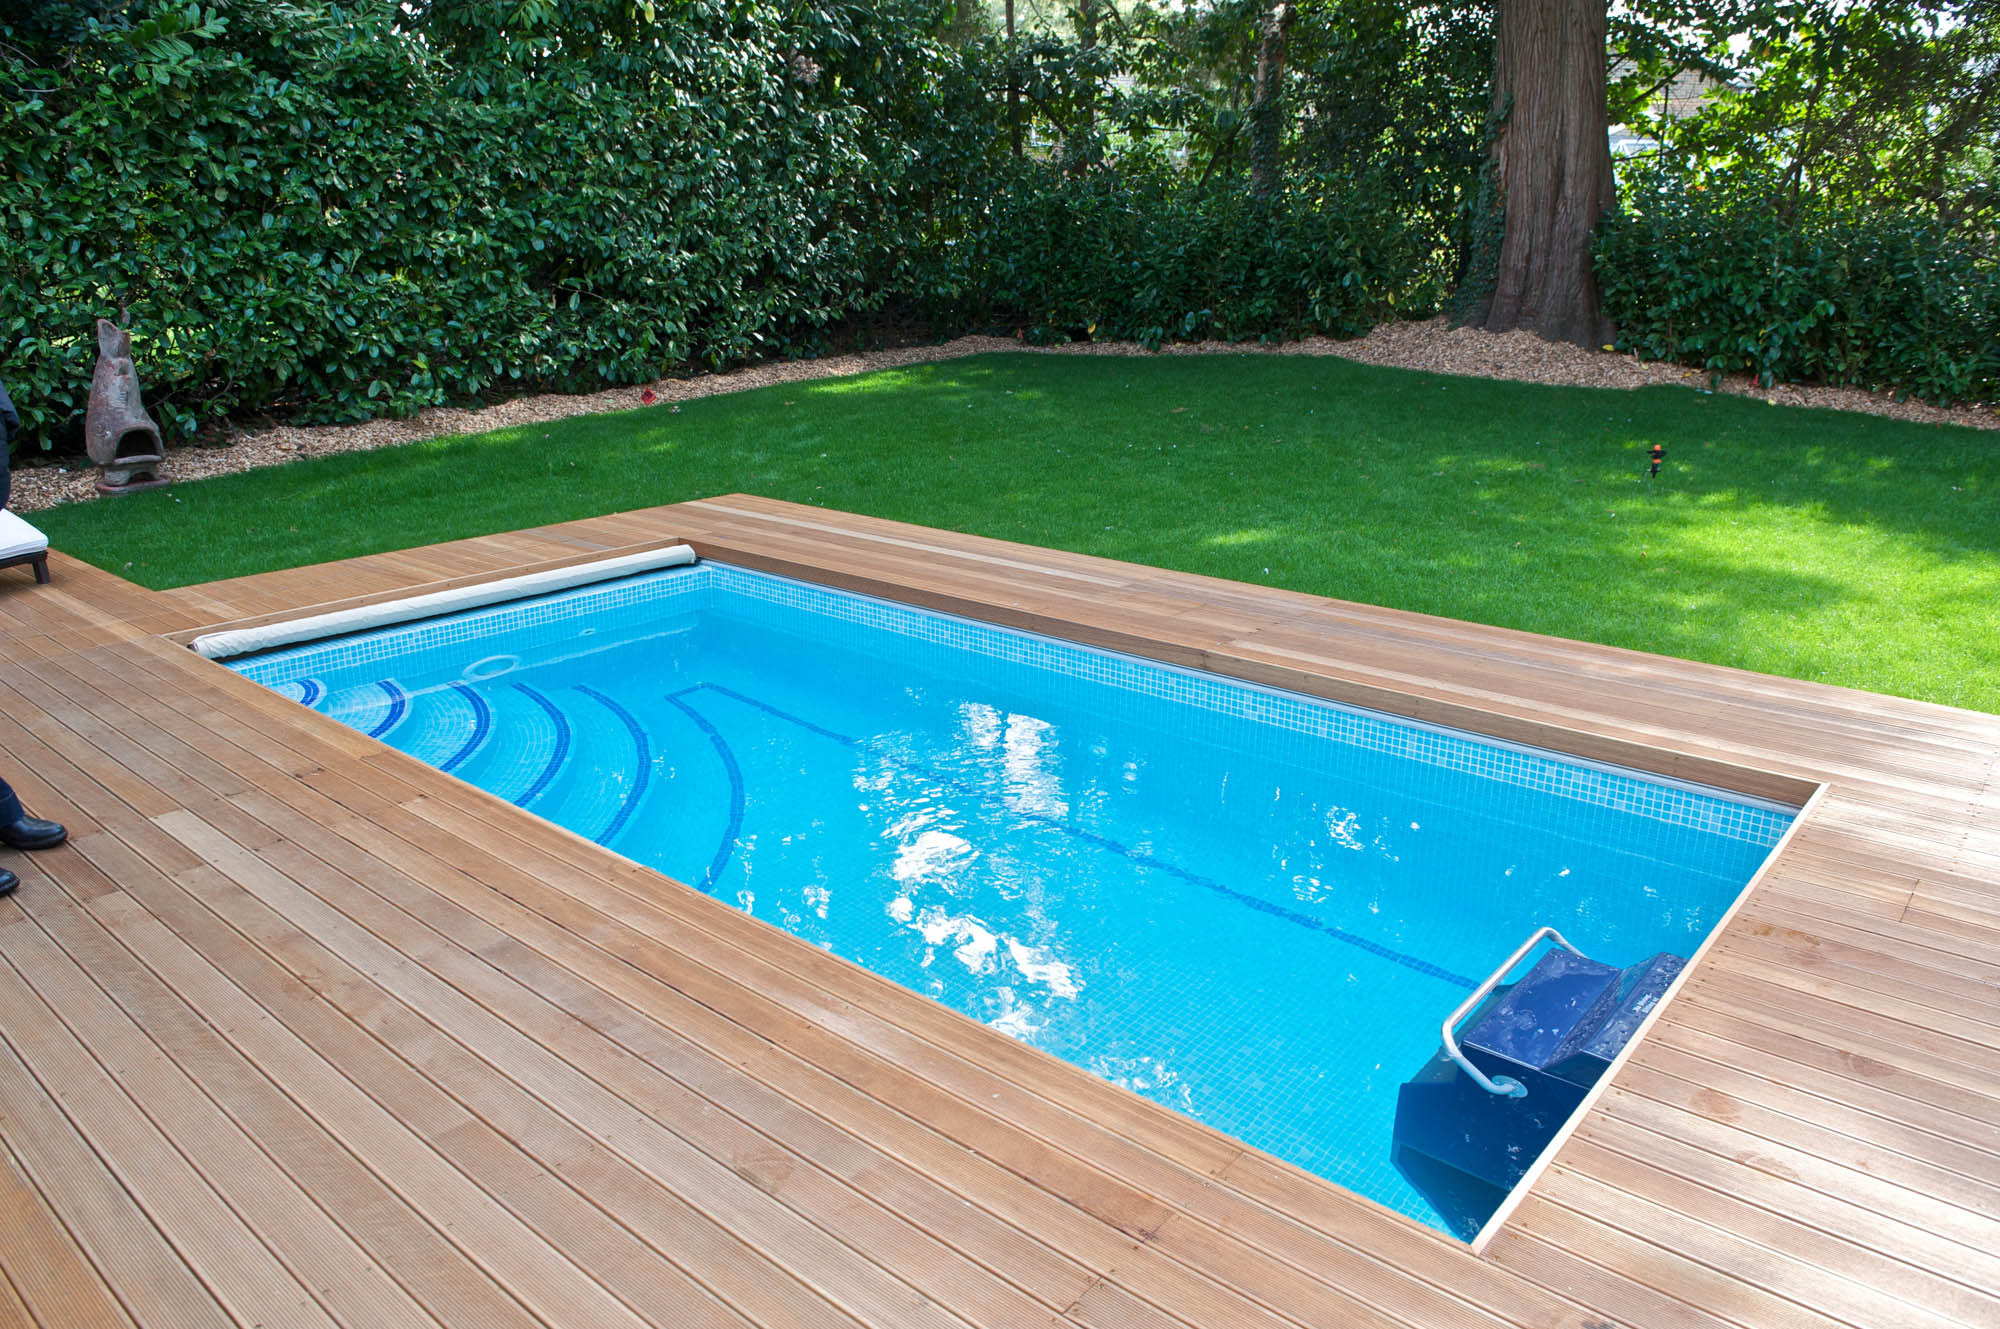 Swim jets a great addition to your pool for exercise and fun - Swimming pool swimming pool swimming pool ...